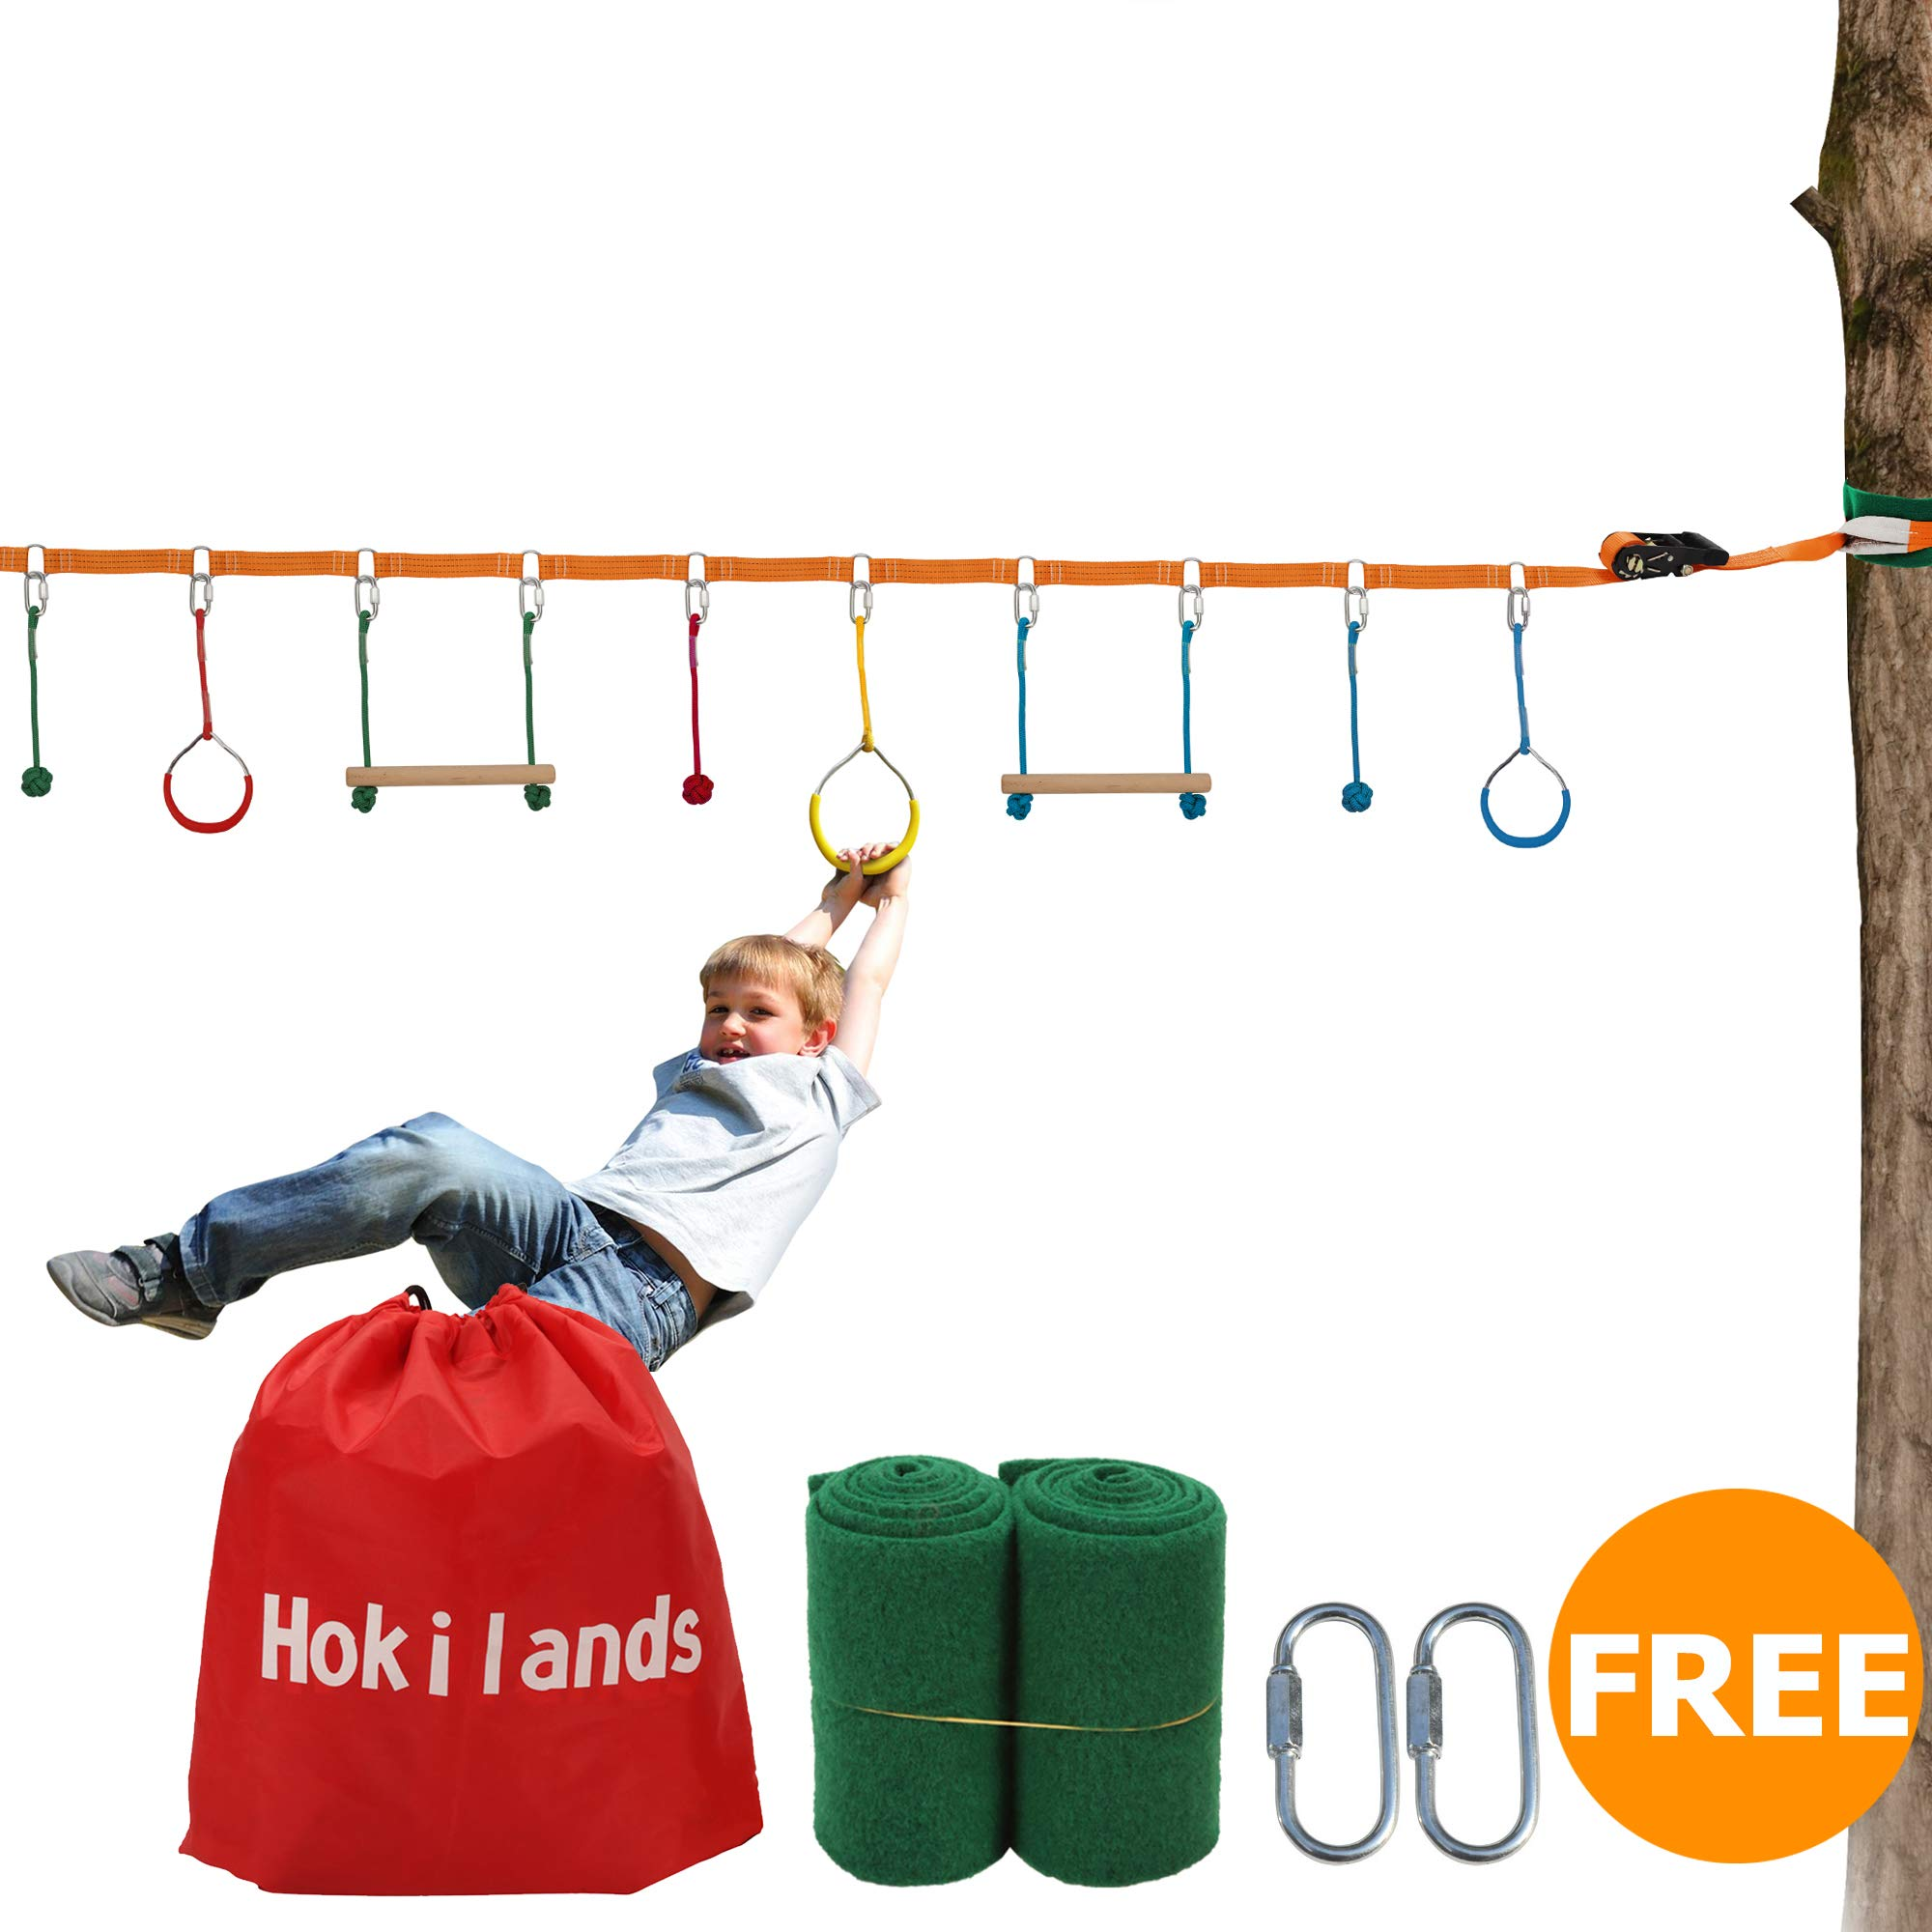 Hokilands 45ft Ninja Slackline Monkey Bars Kit, Kids Warrior Training Obstacle Course Equipment, Jungle Gym Obstacle Course, Slack line Gymnastic Bar, Free Tree Protector and Carry Bag by Hokilands